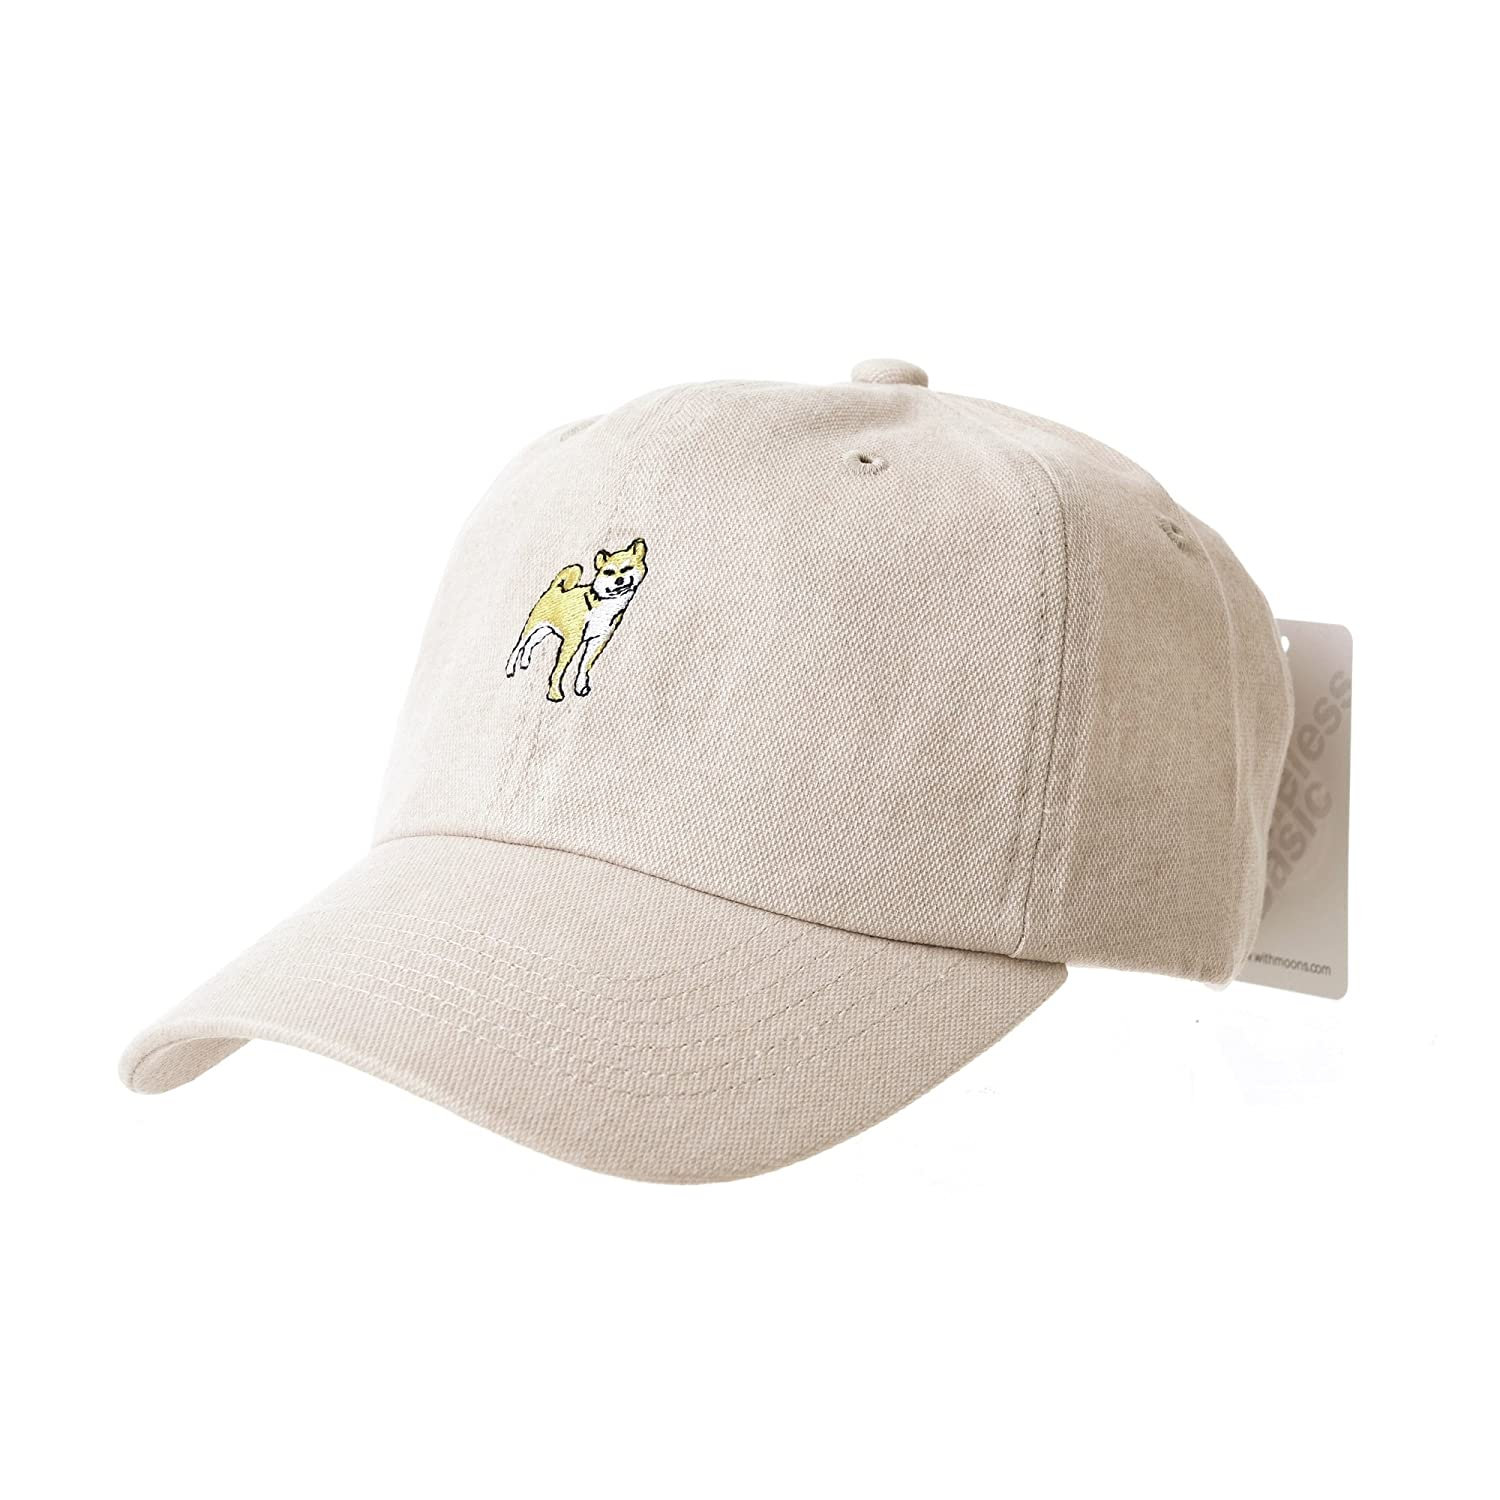 WITHMOONS Baseball Cap Dog Embroidery Shiba Inu Doge Hachi-ko AL1895  (Beige) at Amazon Men s Clothing store  16d7ee11ceb